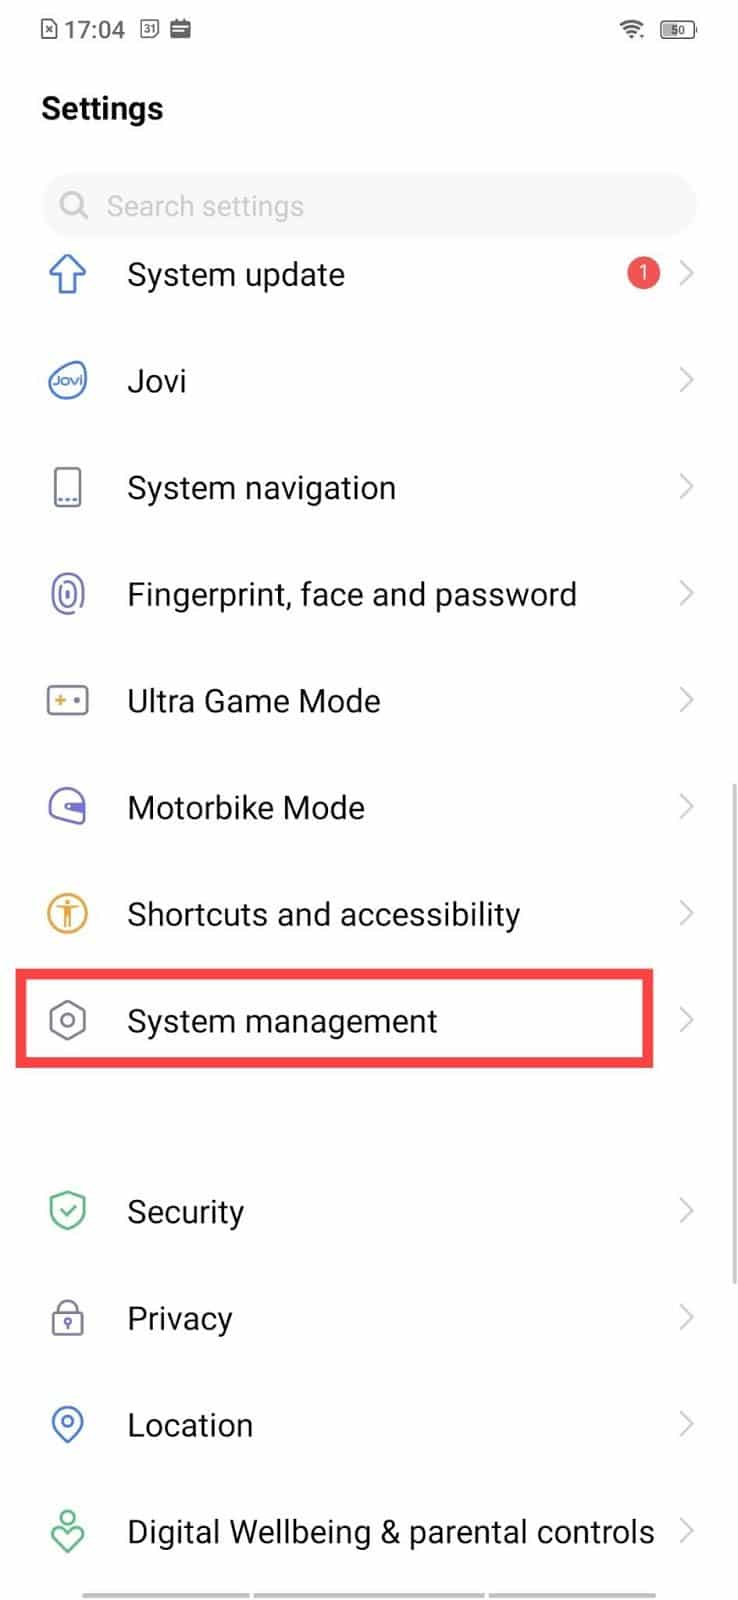 Go to System or System Management   How to Find your Own Phone Number on Android